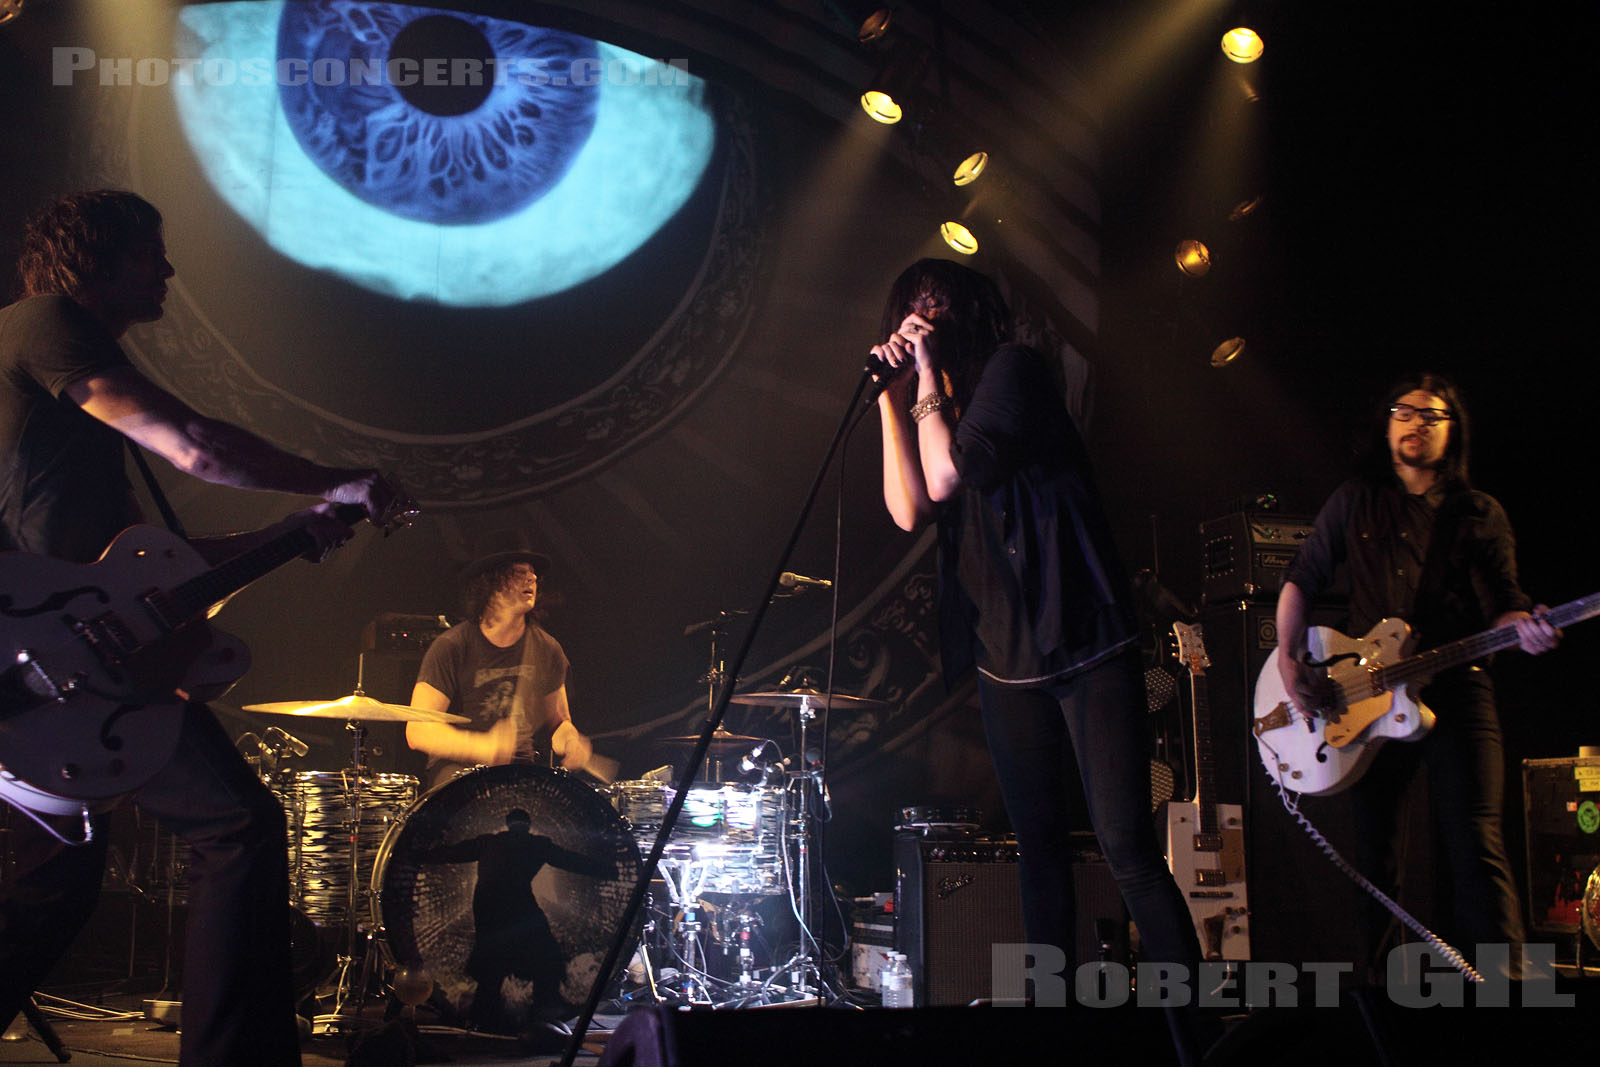 THE DEAD WEATHER - 2010-06-30 - PARIS - Le Bataclan